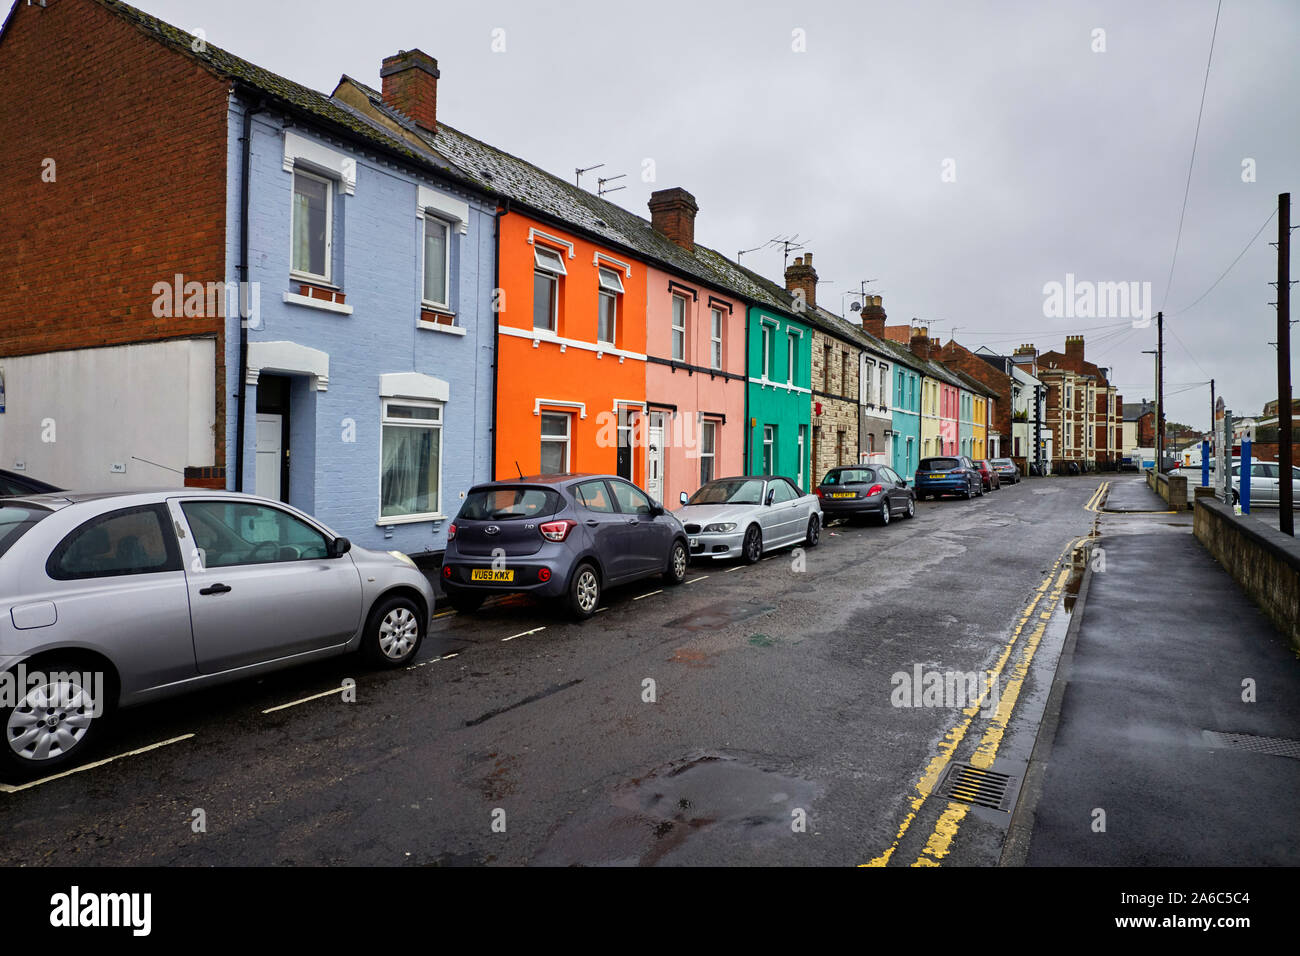 Row of brightly painted terraced houses in Nettleton Road, Gloucester all painted different colours Stock Photo